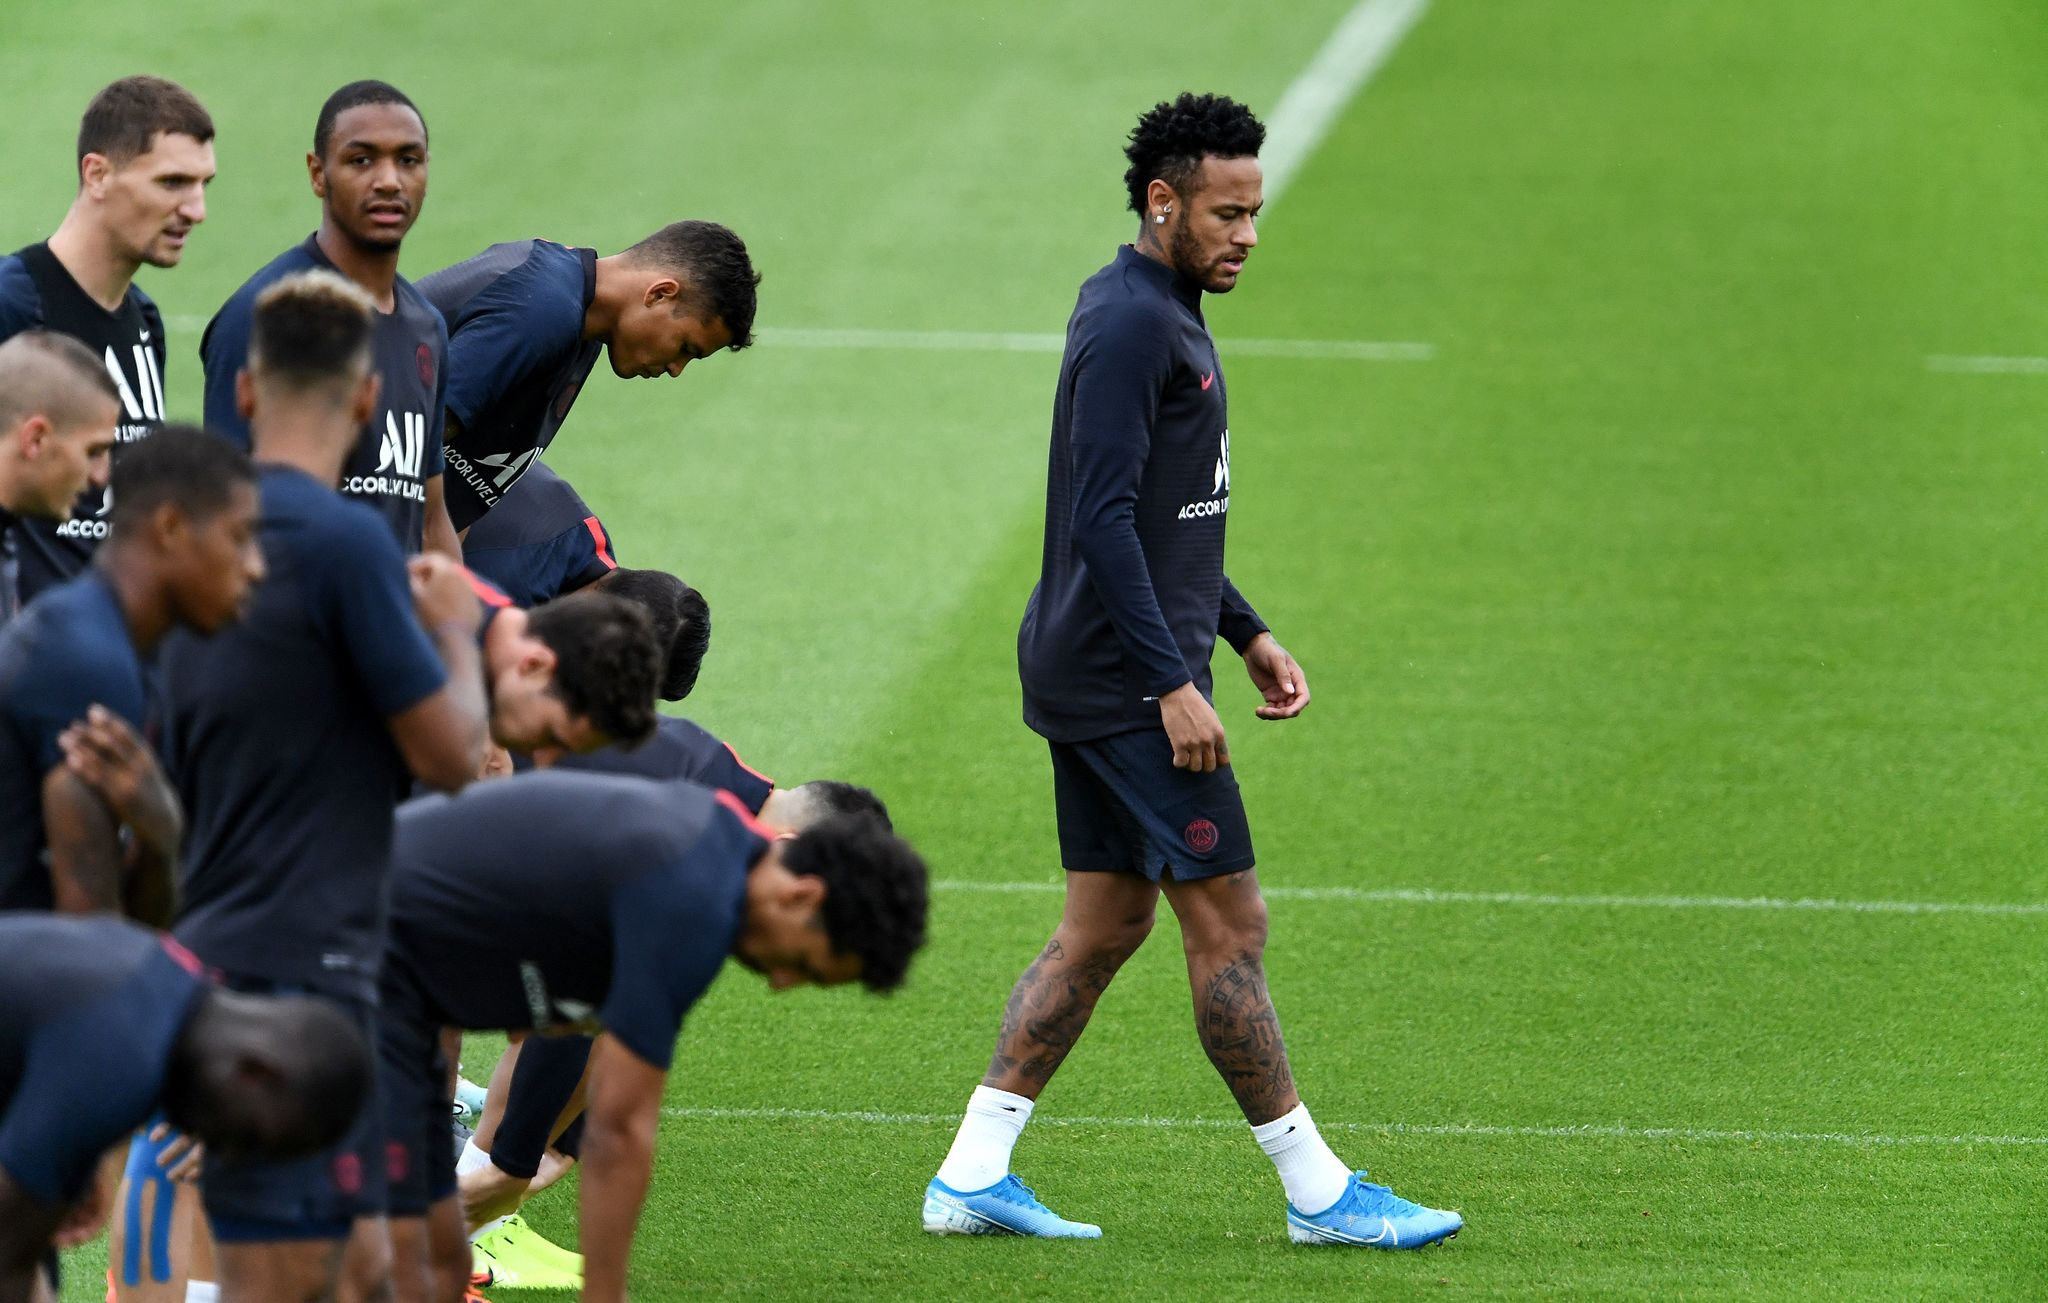 """(FILES) In this file photo taken on August 17, 2019 Paris Saint-Germain's Brazilian forward <HIT>Neymar</HIT> takes part in a training session in Saint-Germain-en-Laye, west of Paris, on the eve of the French L1 football match between Paris Saint-Germain (PSG) and Rennes. - Paris Saint-Germain coach Thomas Tuchel said <HIT>Neymar</HIT> is """"ready"""" for the upcoming Ligue 1 game but whether he plays depends on developments in the Brazilian's bid to leave the club. (Photo by FRANCK FIFE / AFP)"""